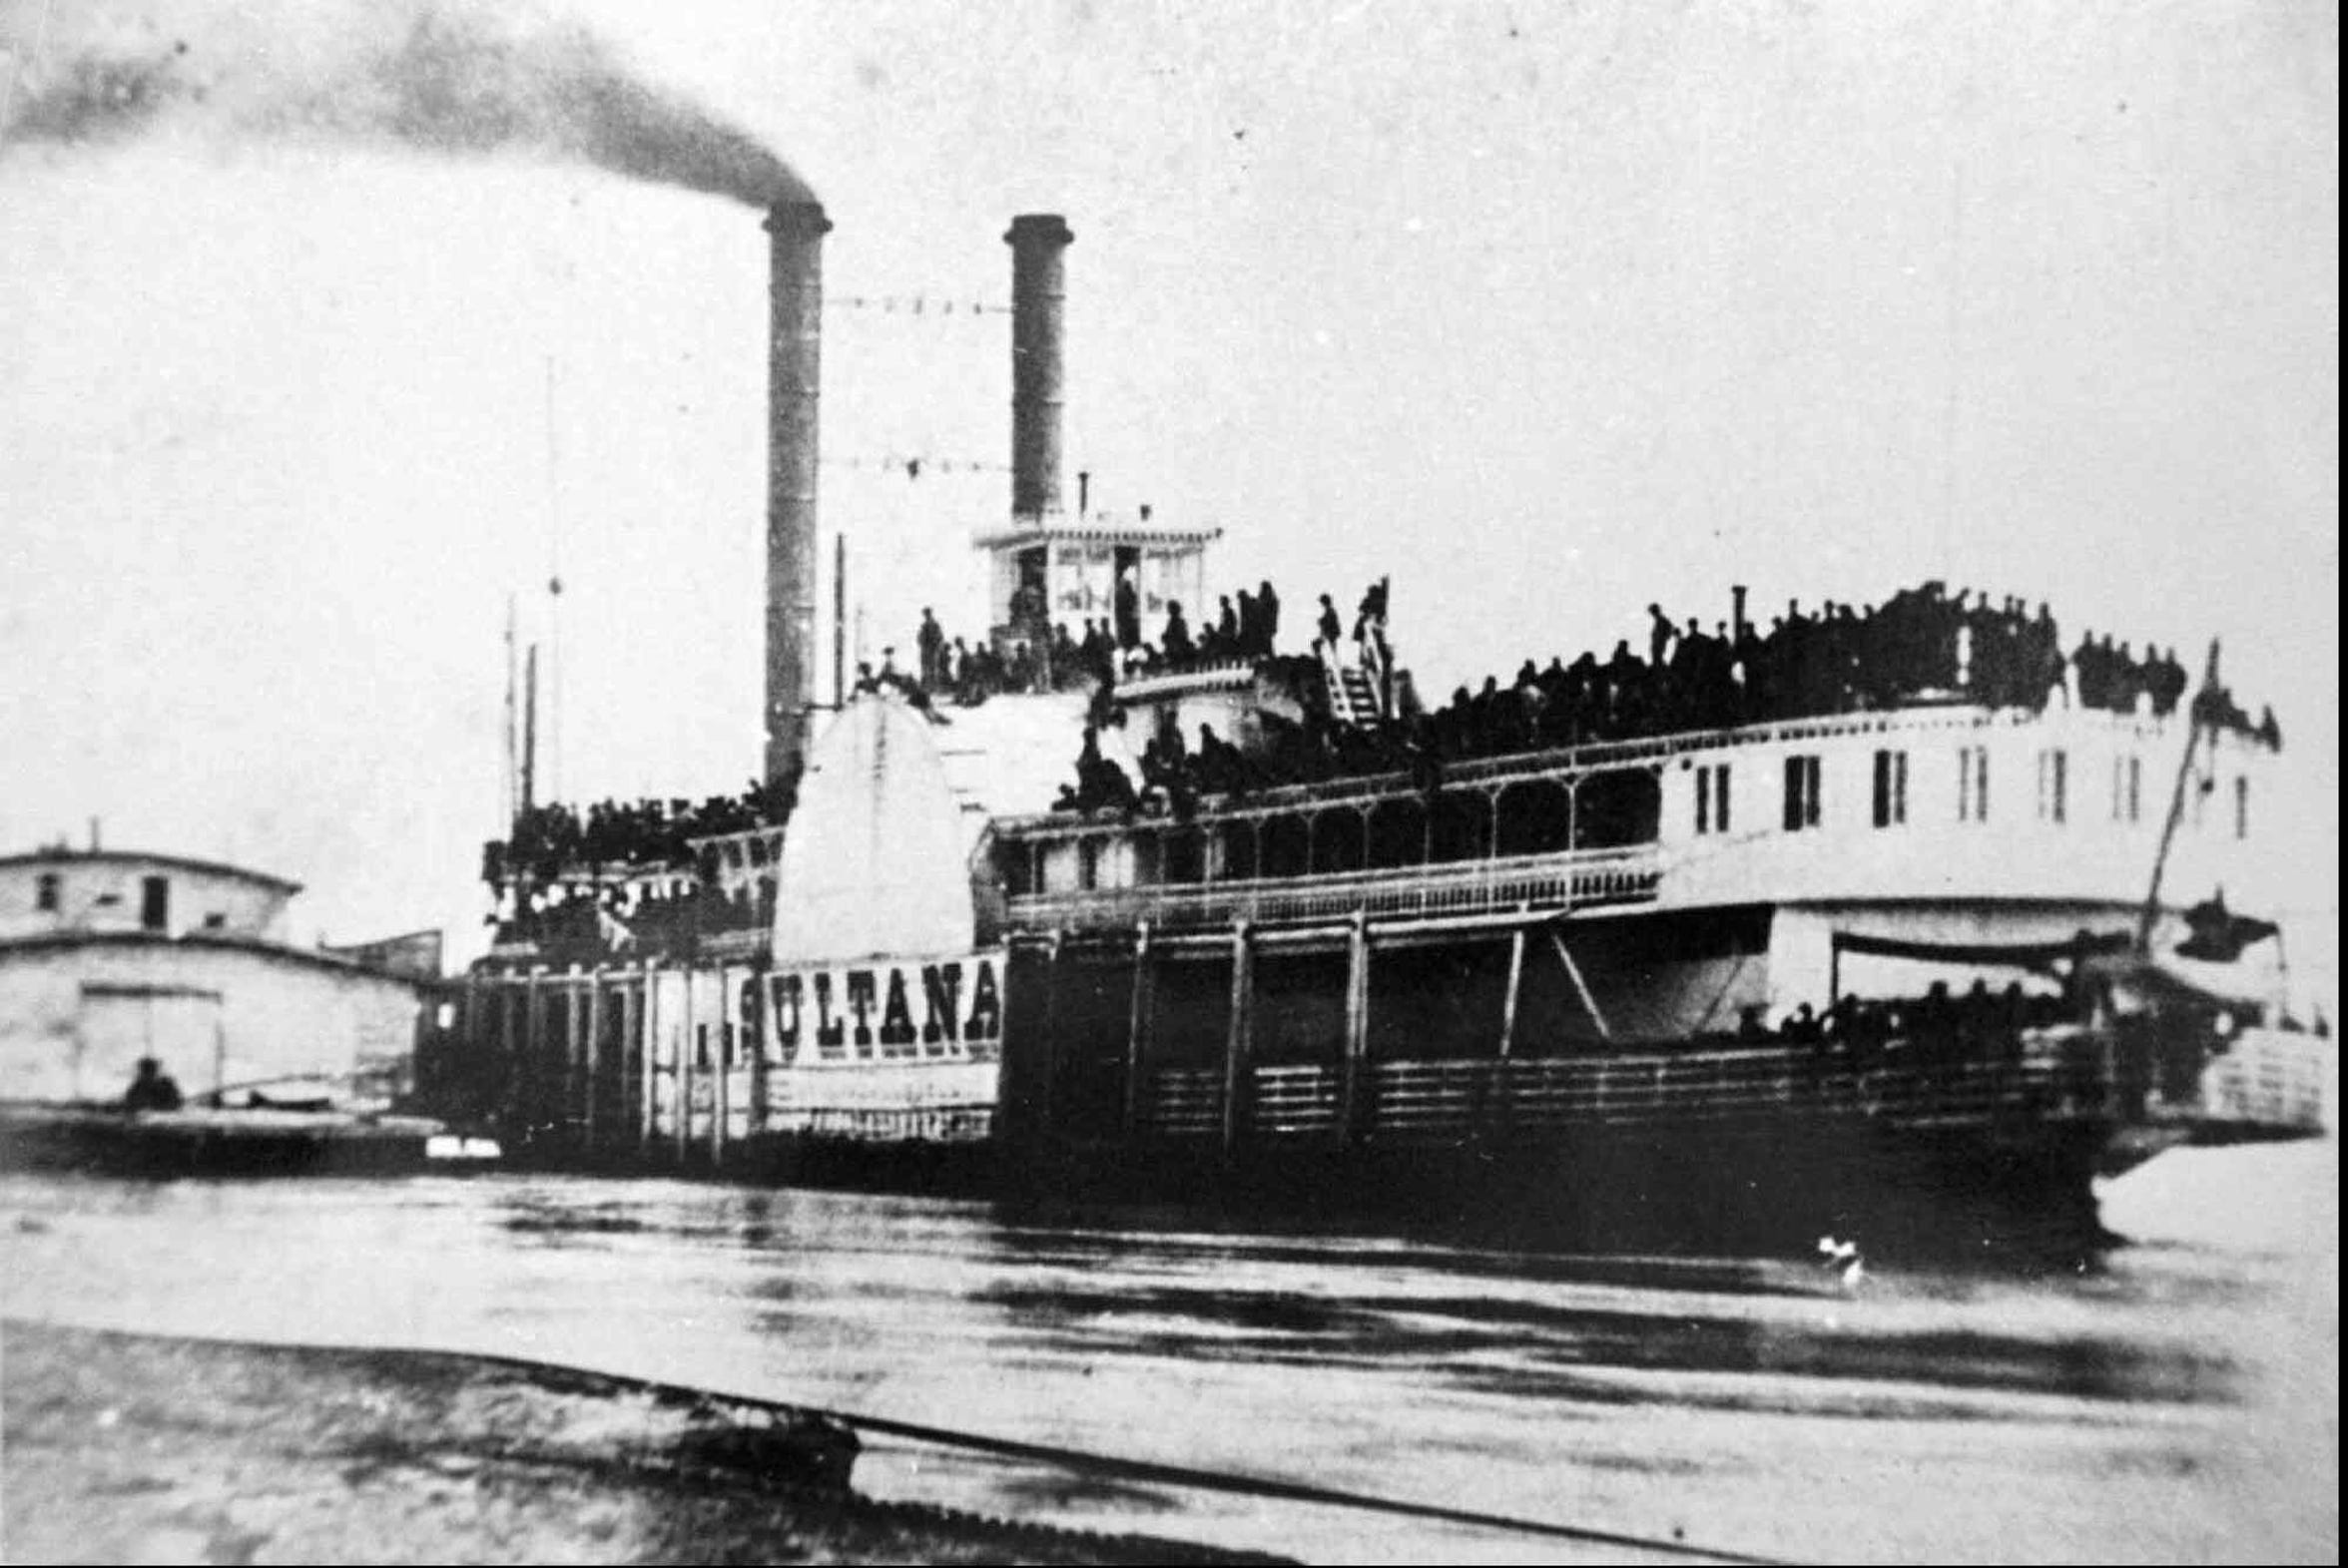 The steamboat Sultana is shown in an April 26, 1865, file photo docked on the Mississippi River at Helena, Ark. About 1,800 people died when the boat exploded the following night near Marion, Ark.